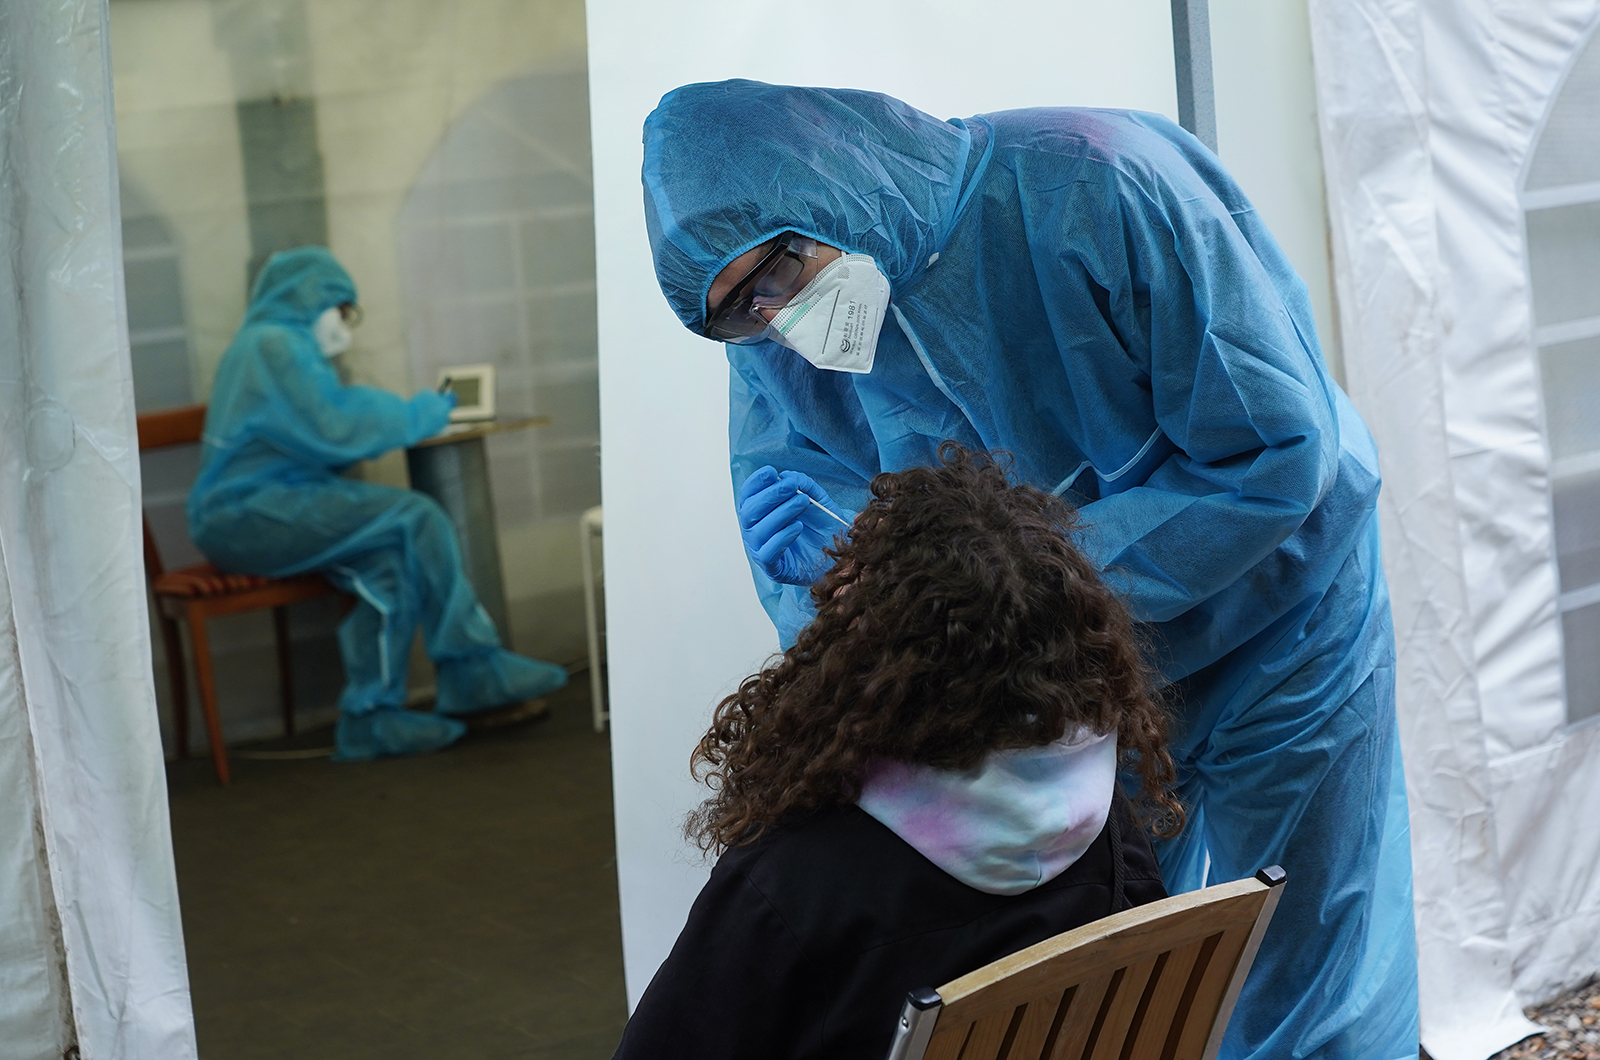 A medical worker takes a nose swab sample from a young woman for a Covid-19 test in Berlin, on January 7.